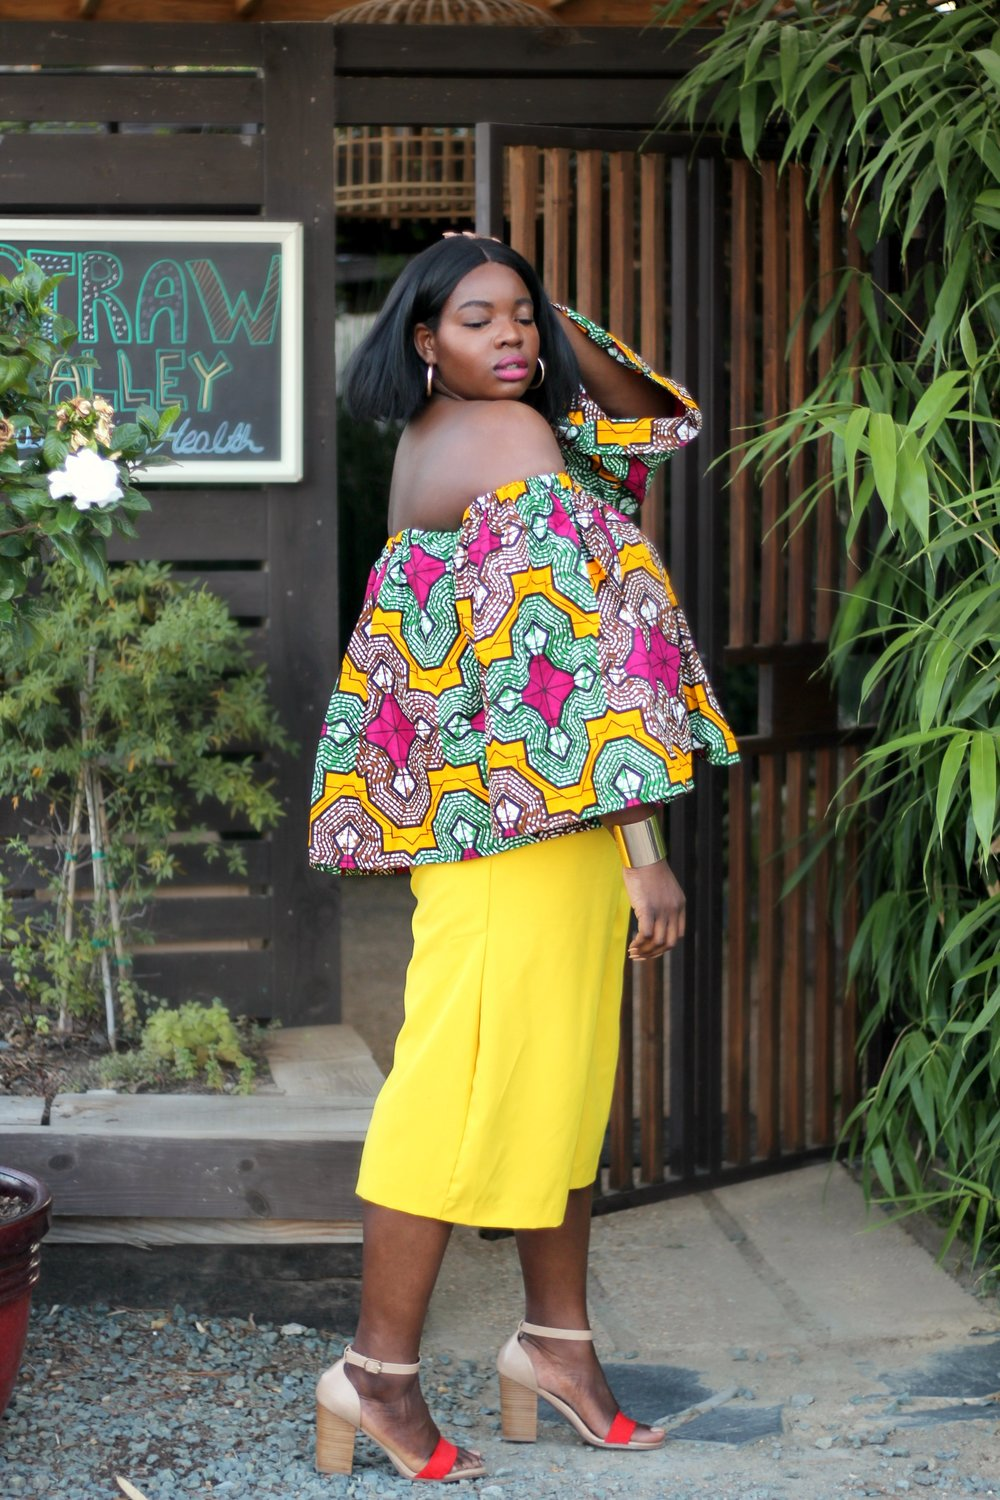 Bright Colored Prints - Never be afraid to rock bold prints. If you are, what better time to try it out than on a vacay? Pair your print with a solid color piece, a matching print, or if you're feeling adventurous, mix and match your prints. This gorgeous top is from Grass Fields.